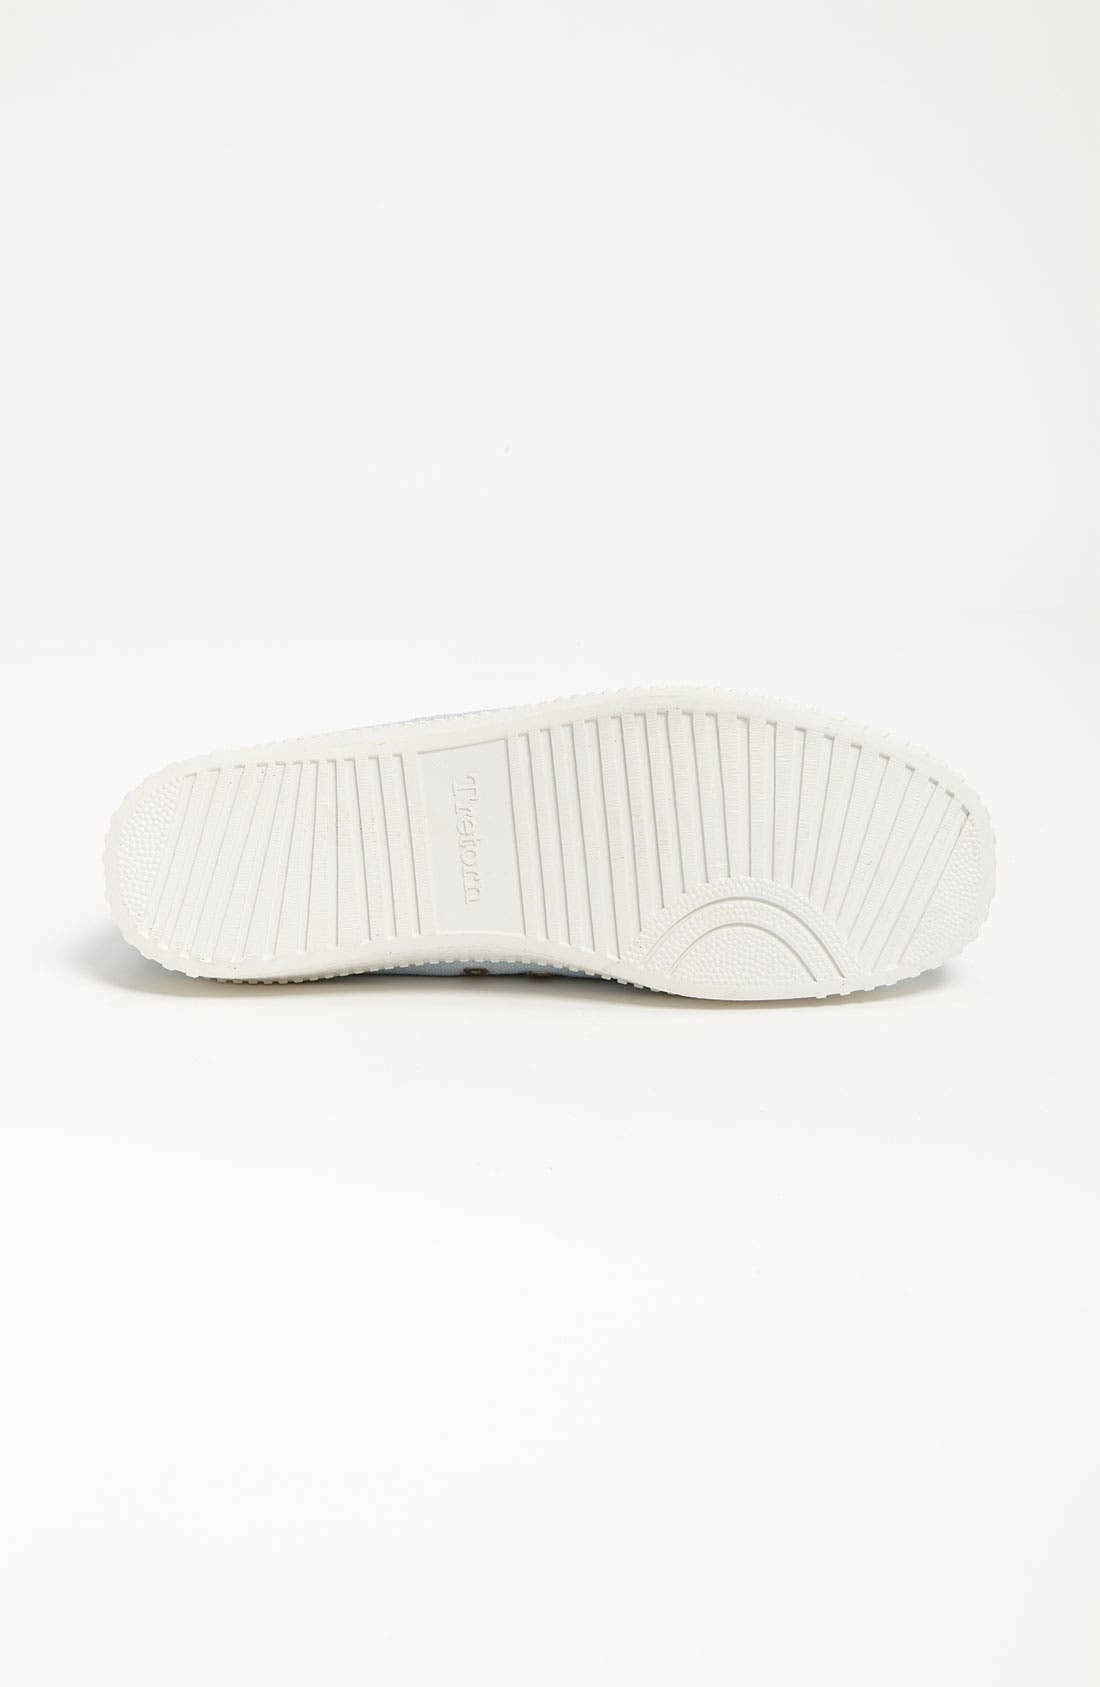 'Nylite' Sneaker,                             Alternate thumbnail 37, color,